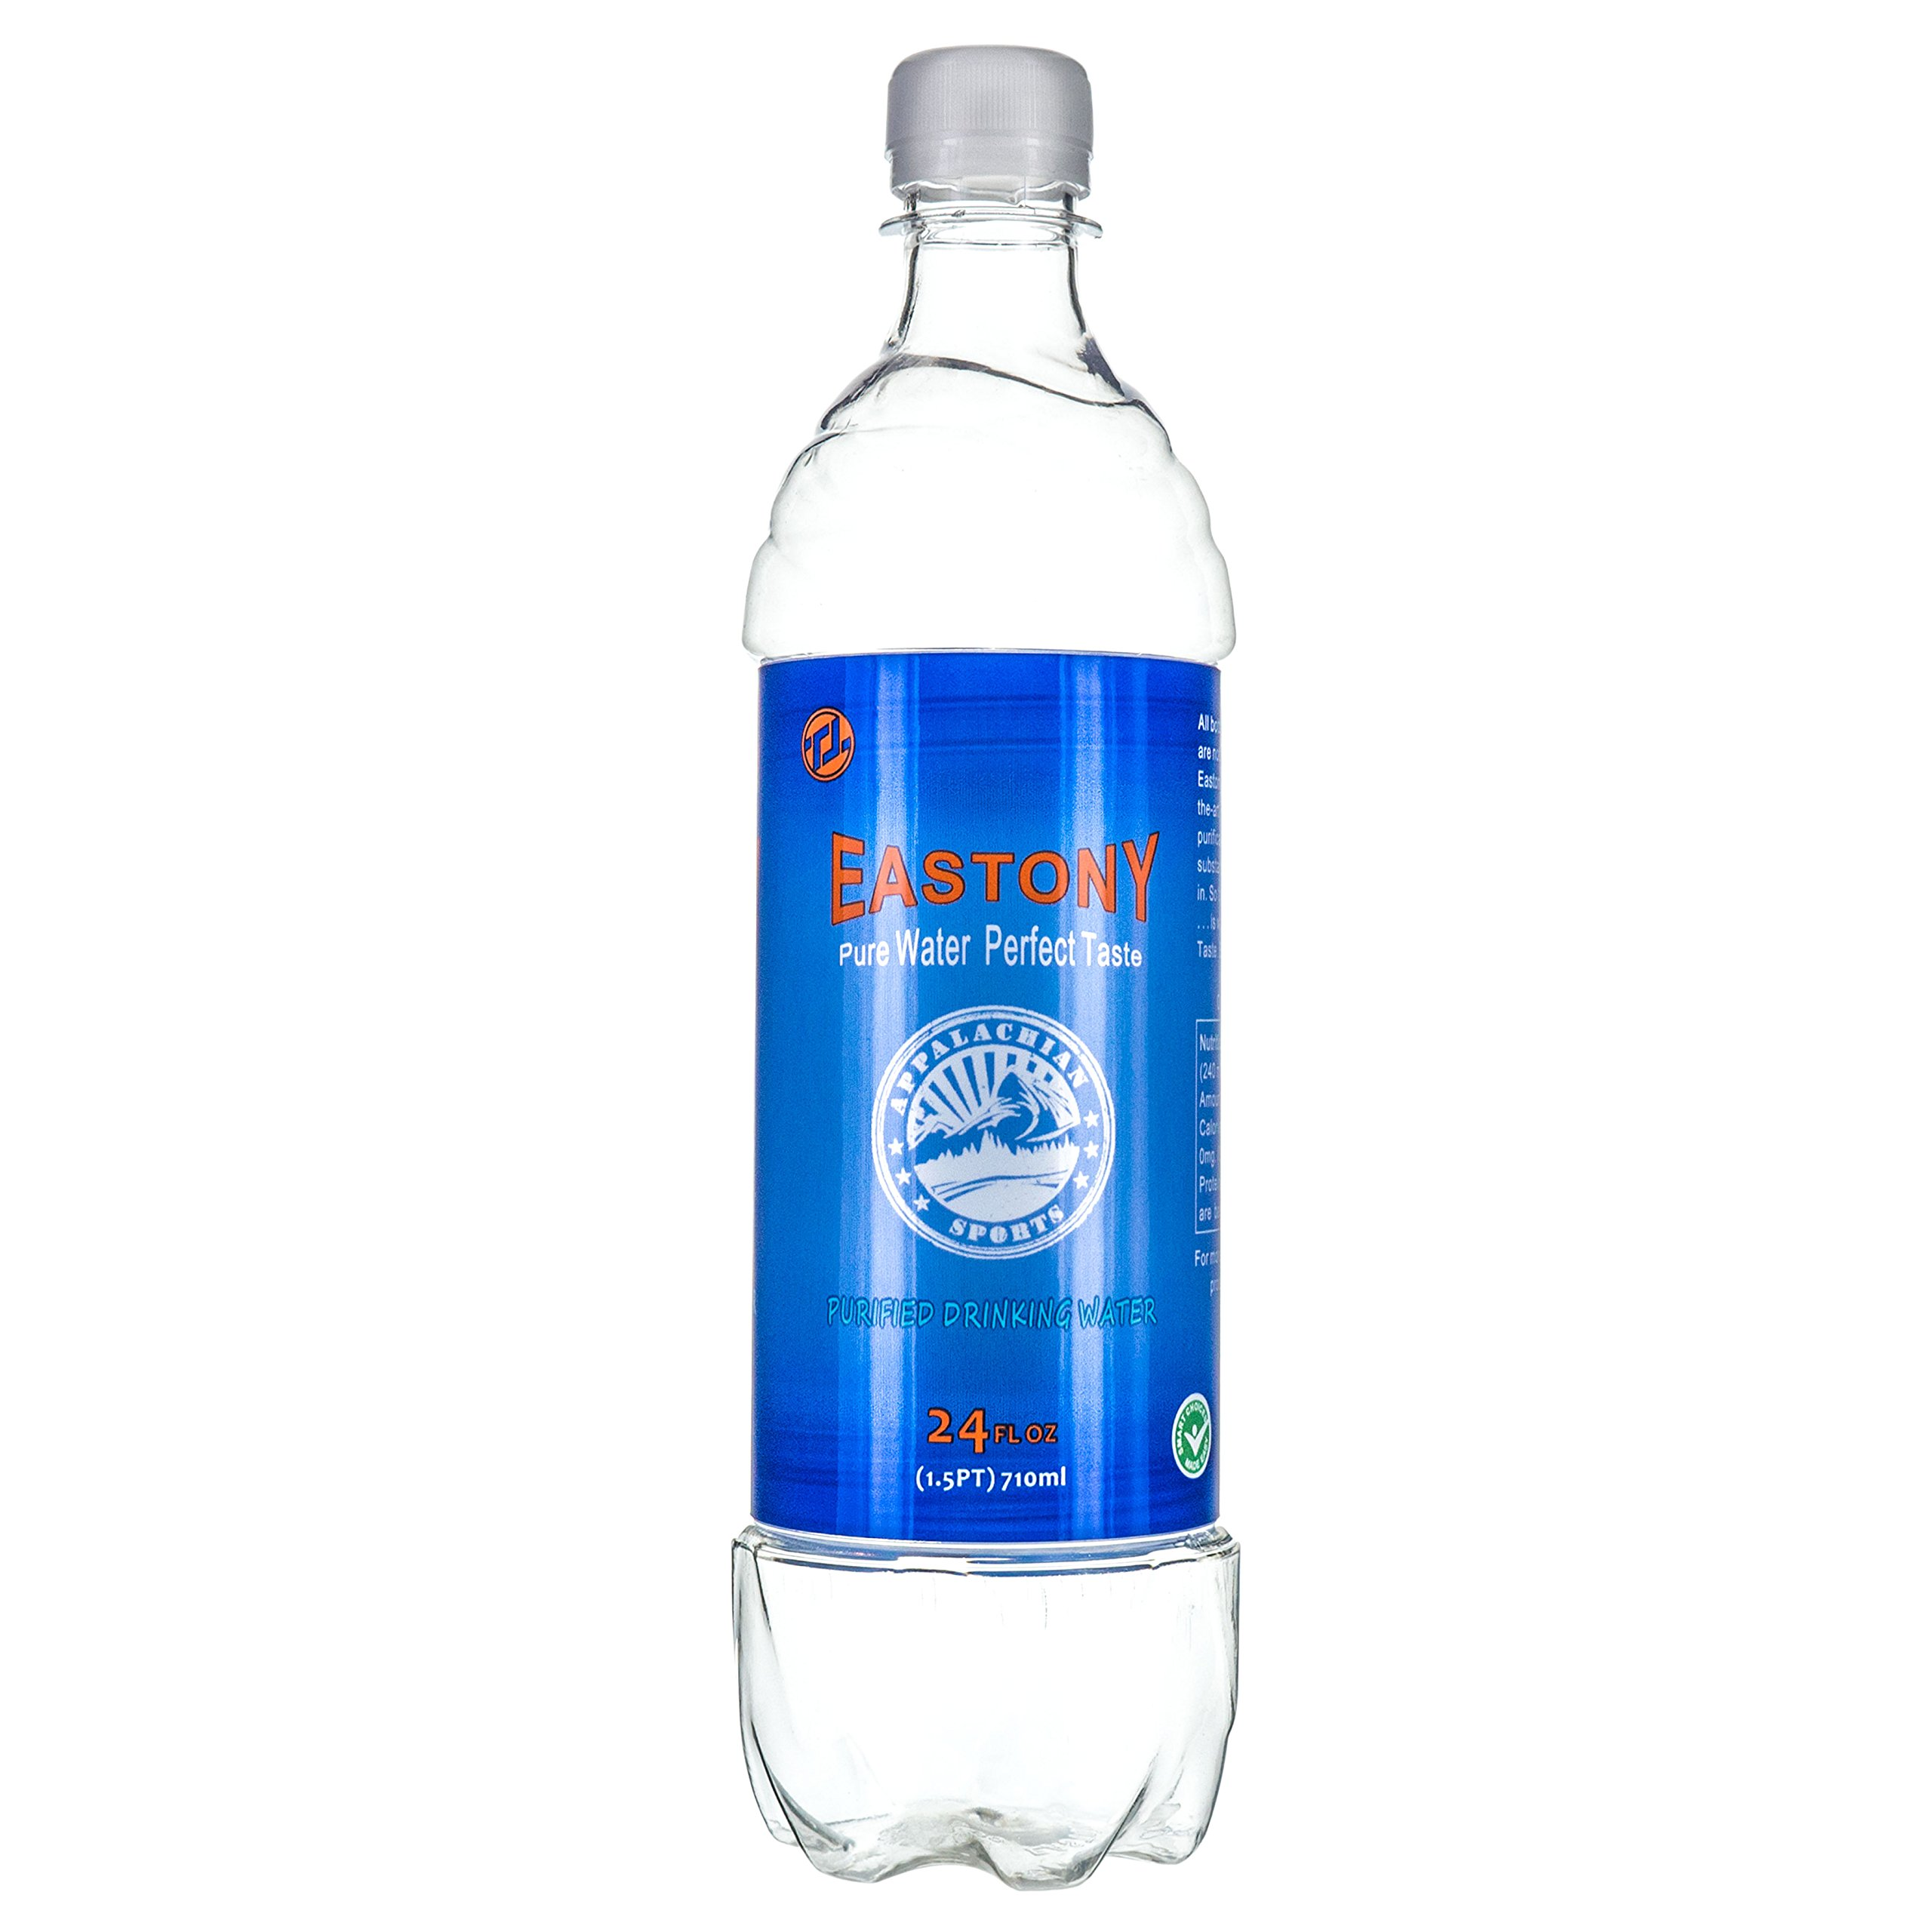 PartyBottle Diversion Safe Bottle Stash Can w/Smell-Proof Stash Bag by HumanFriendly – Ultra-Discrete, Authentic Looking BPA-Free Water Bottle Stash Container Includes Sound-Proof Bag by ExpressGifts (Image #2)